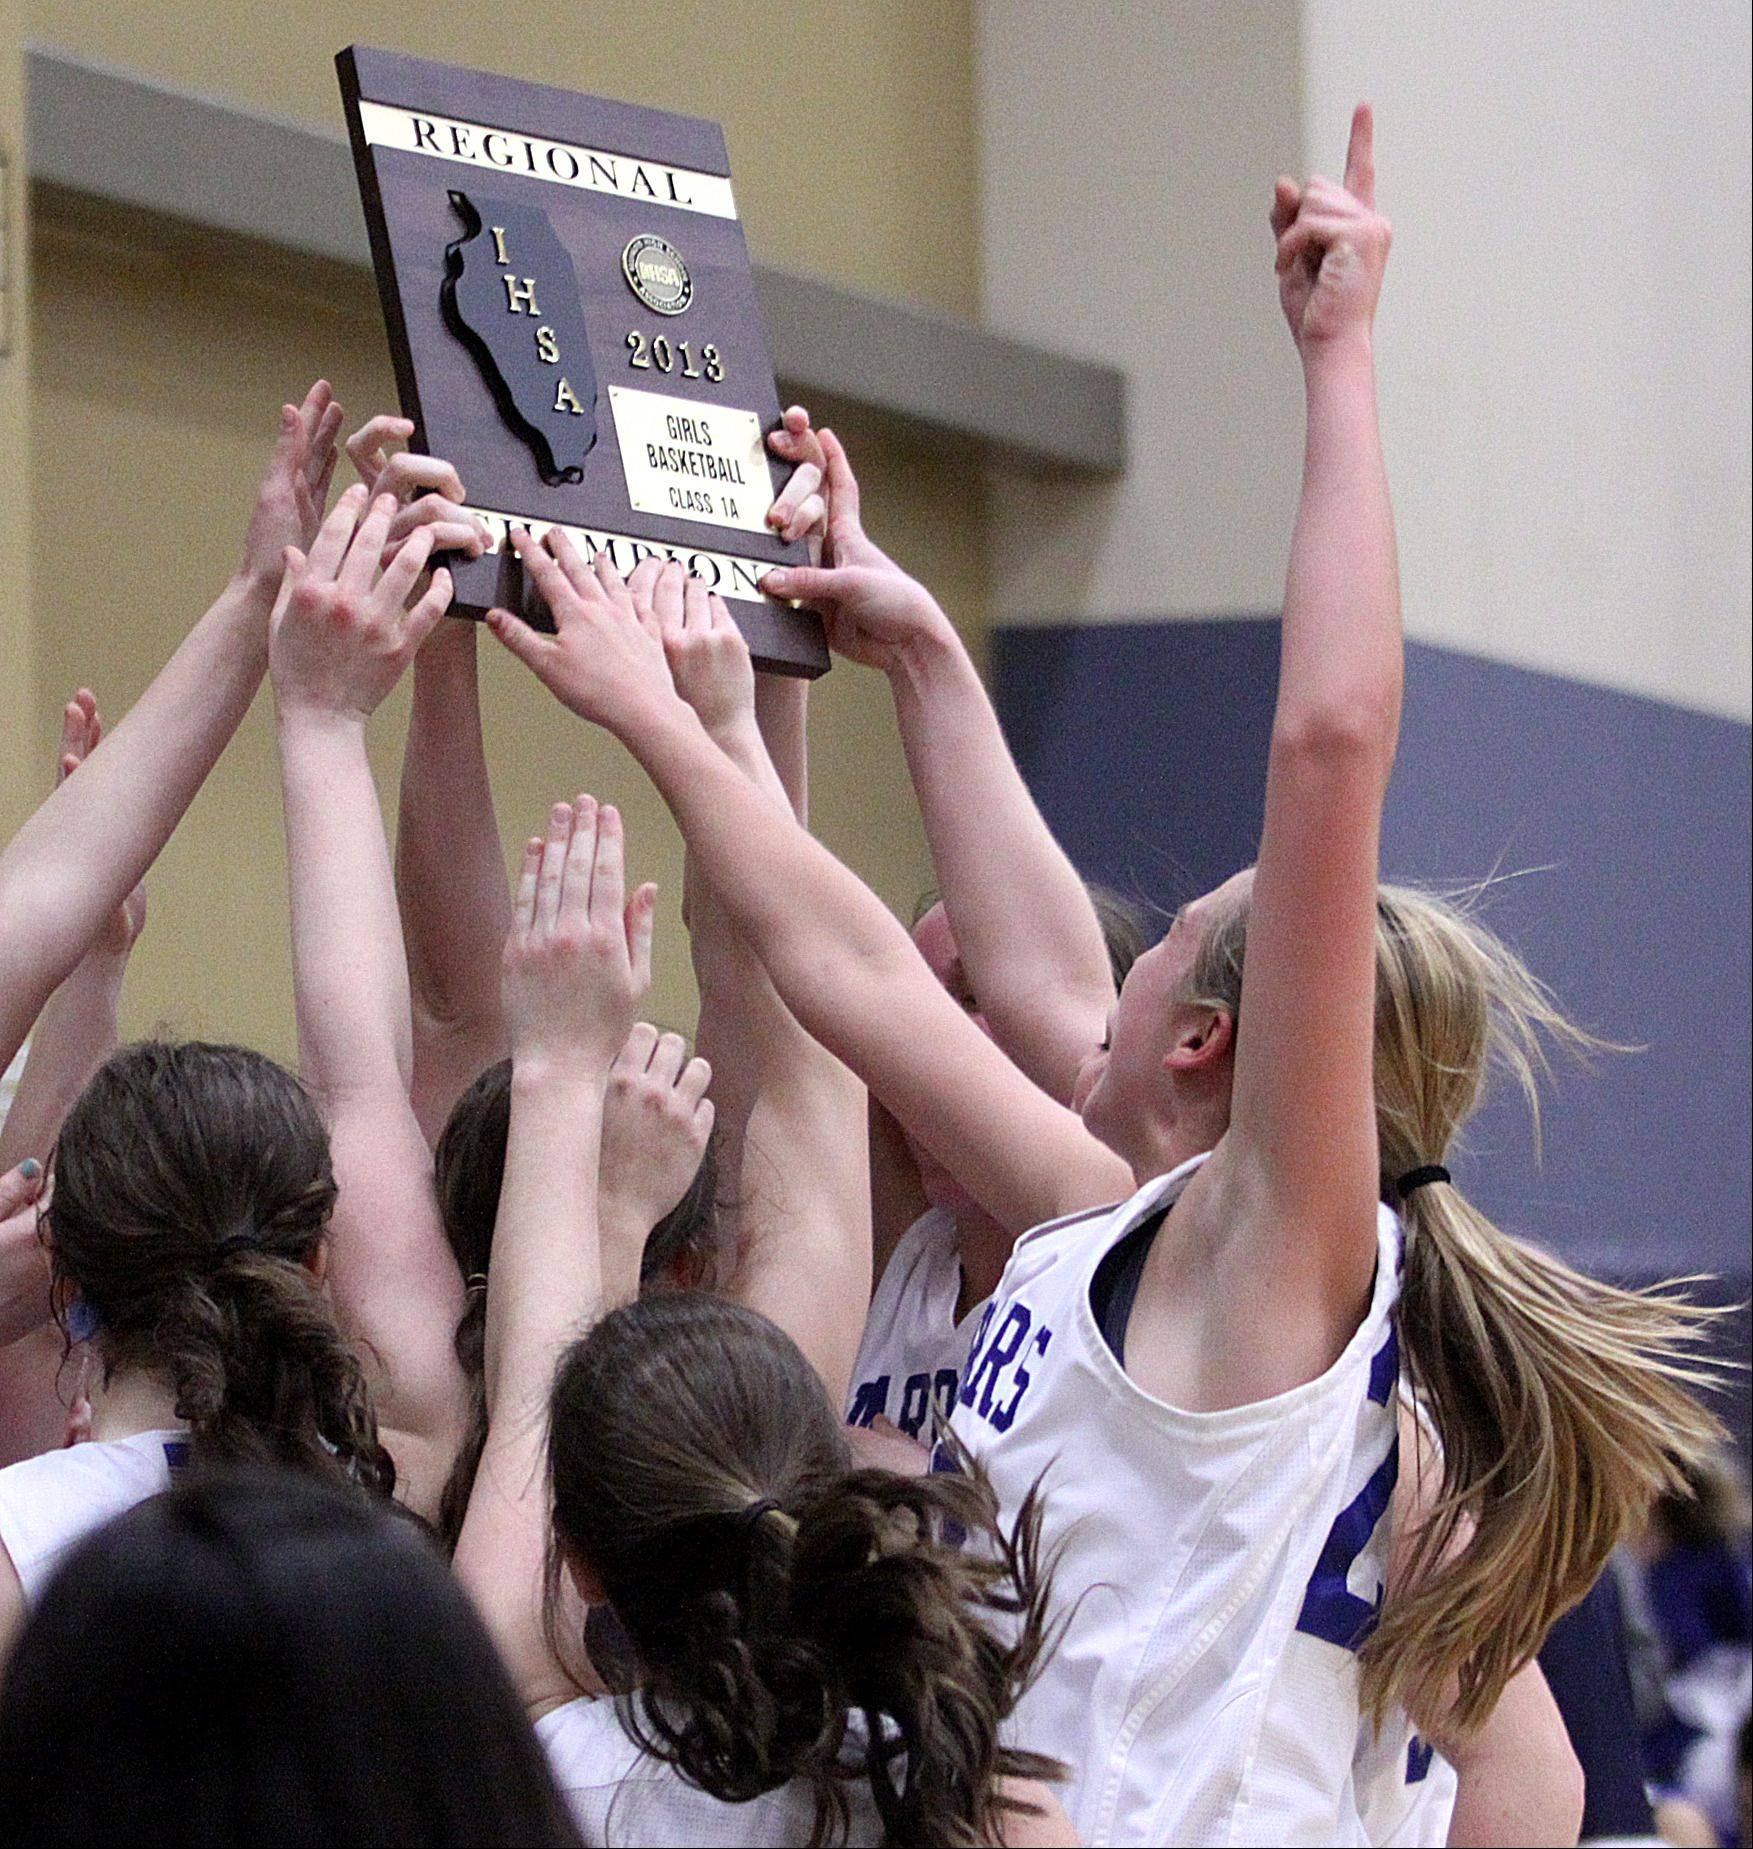 Westminster Christian players raise their hardware after beating Christian Liberty Academy 62-43 for the Class 1A Harvest Christian regional championship Friday.